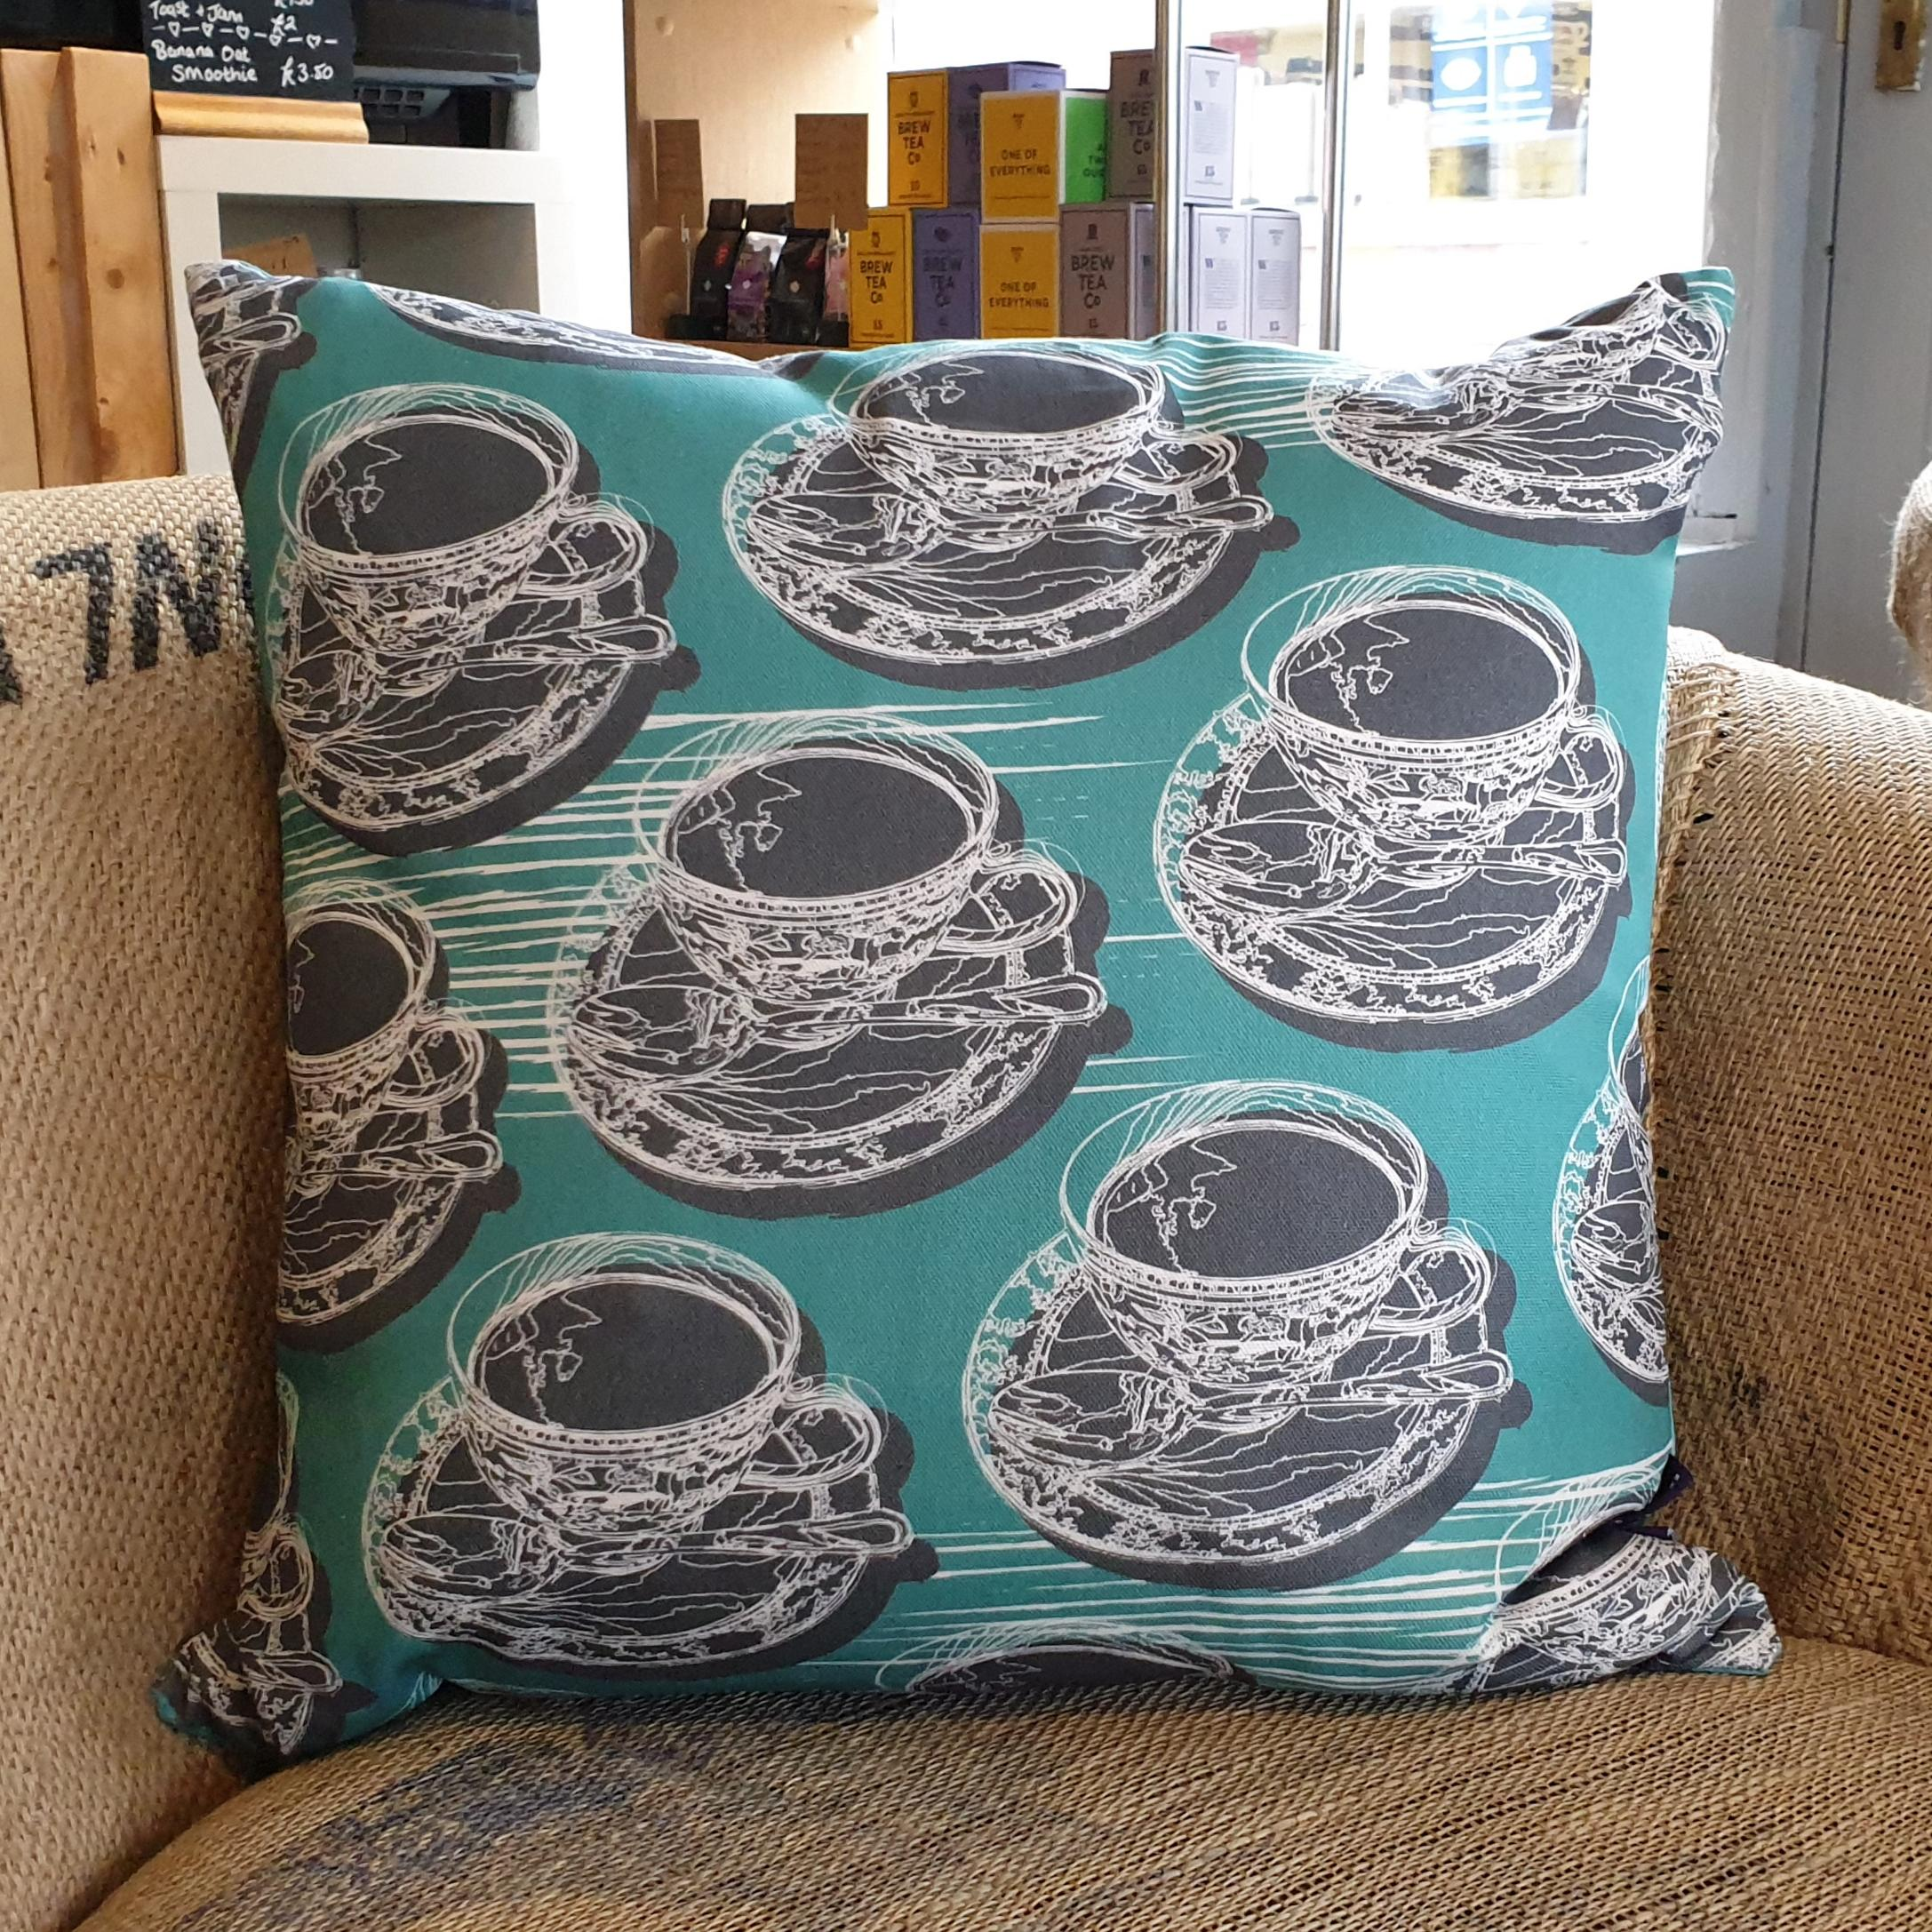 Double-sided aqua teal 45cm square retro Afternoon Tea cushion with artistic white shards designed by thetinkan. White traced outline of multiple British teacups and saucers each colour filled in charcoal grey. Available with an optional luxury cushion inner pad. VIEW PRODUCT >>